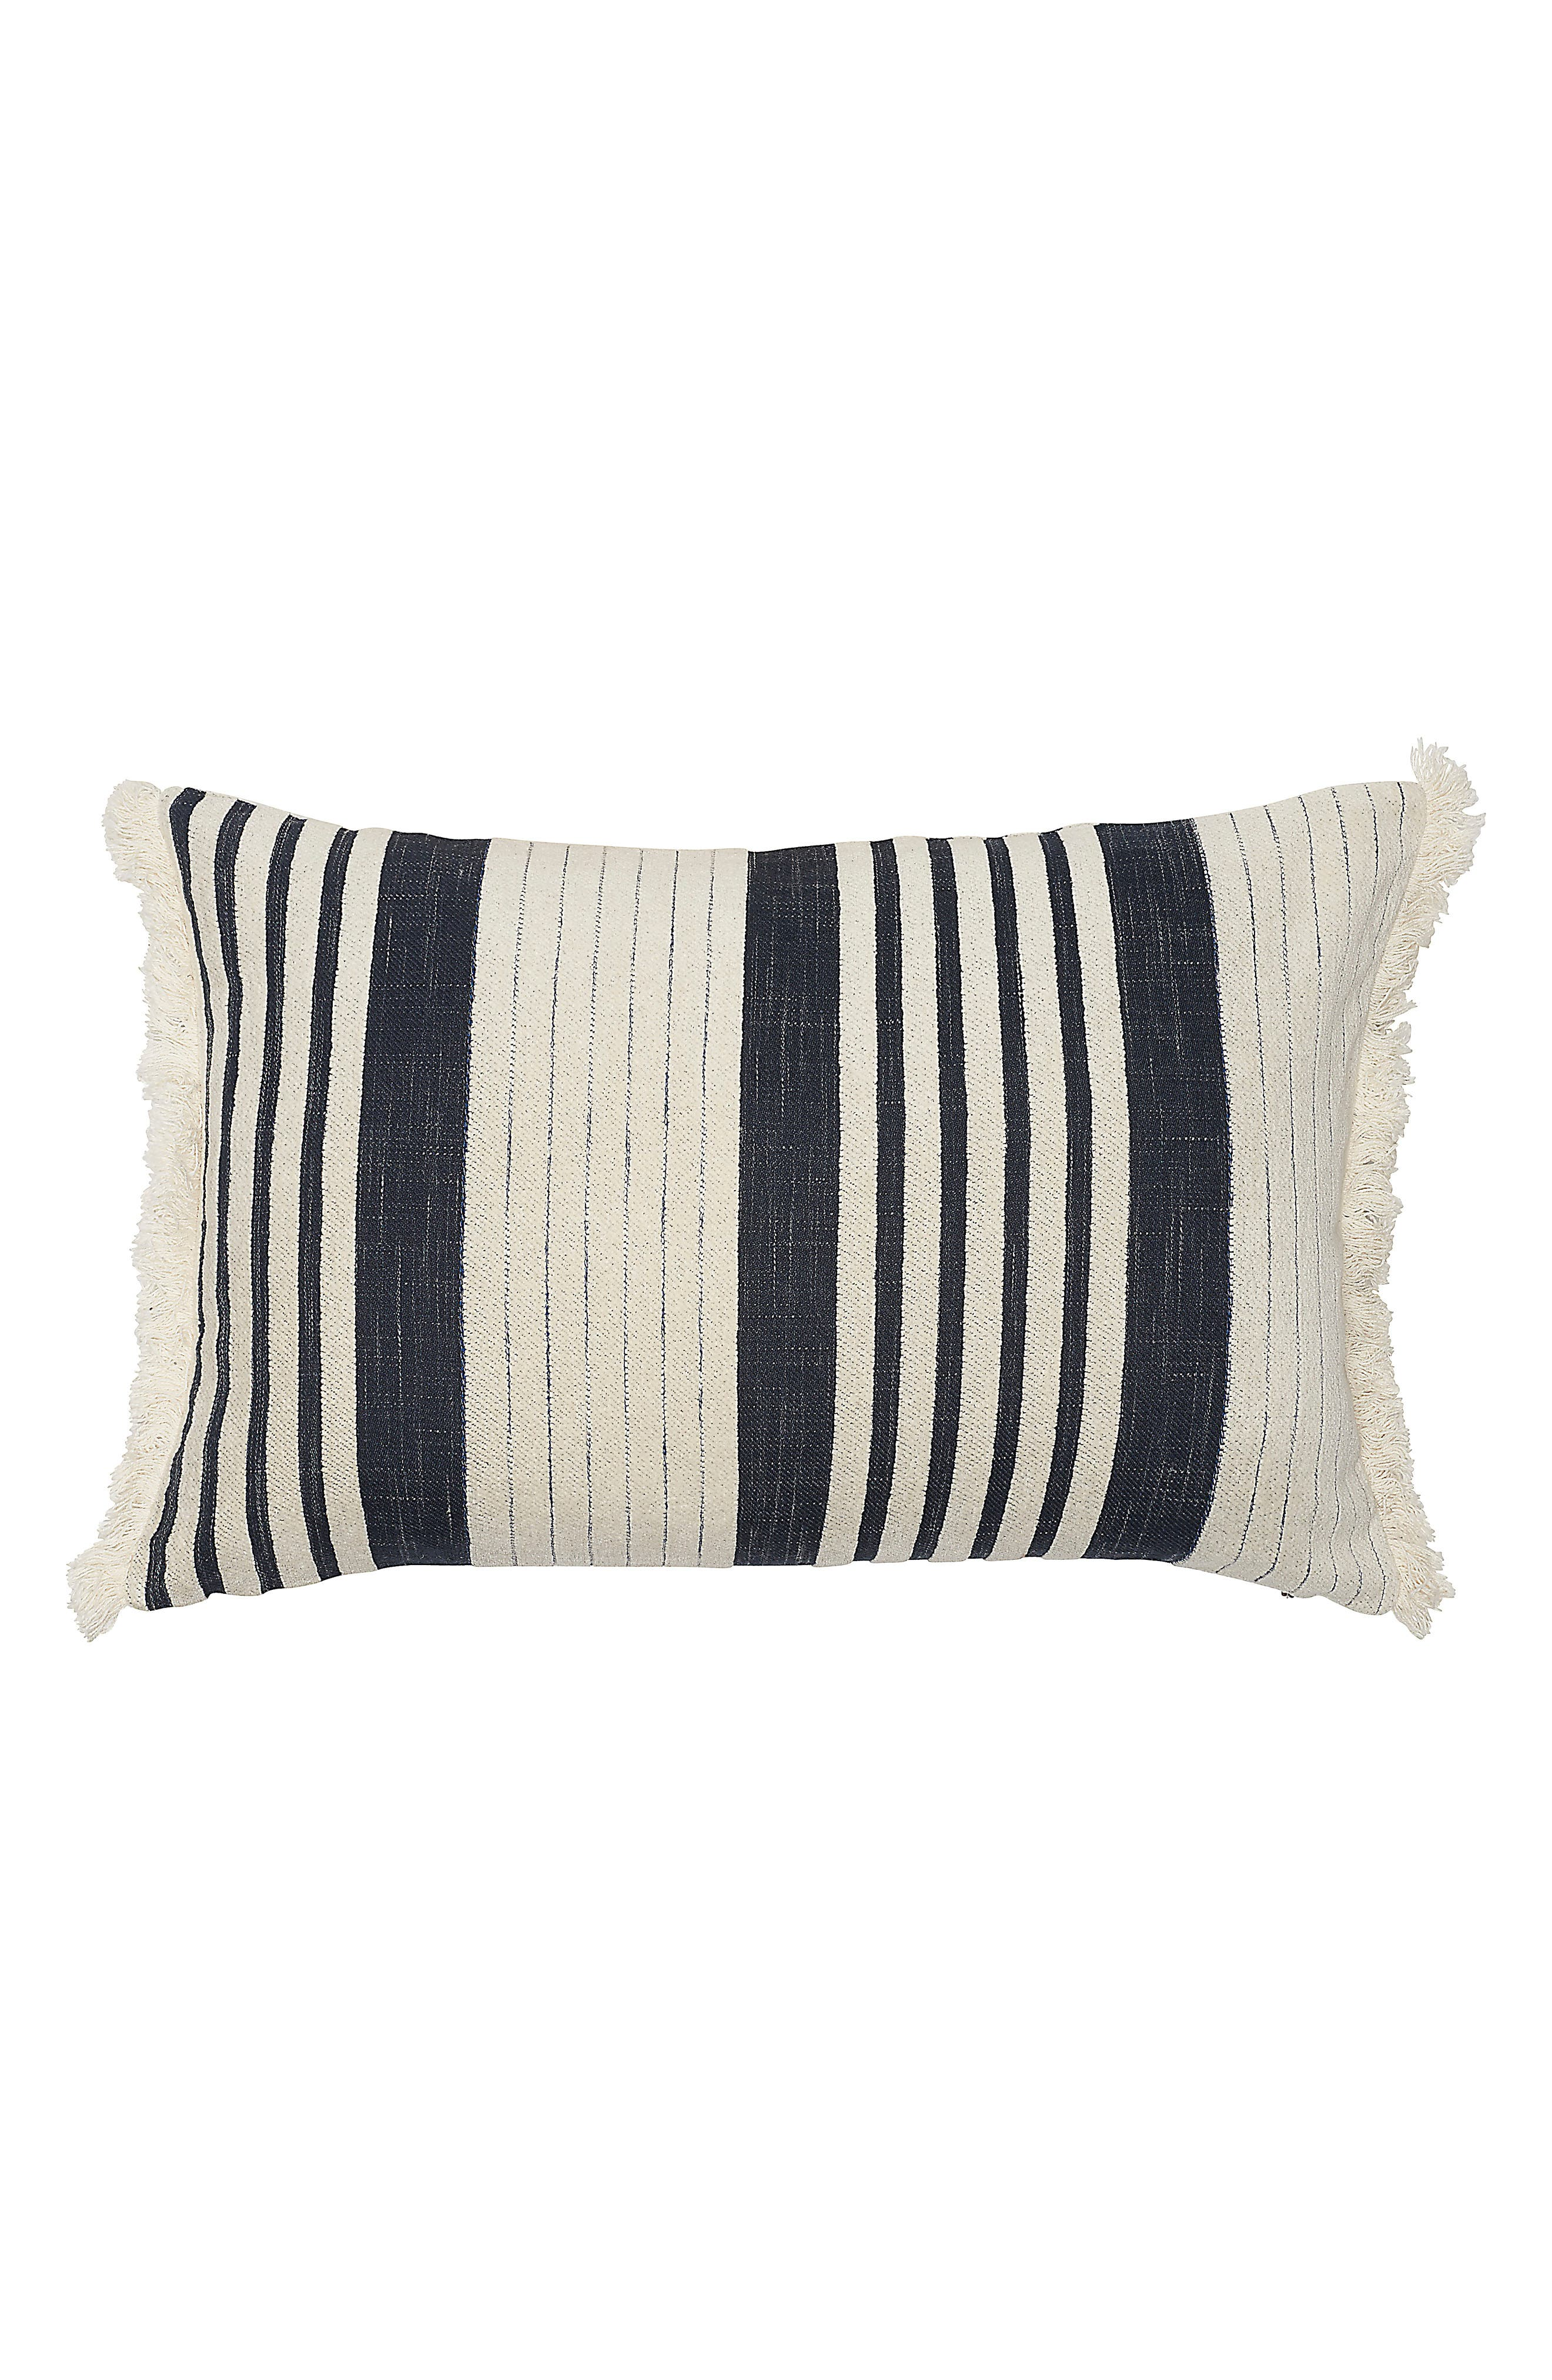 EADIE LIFESTYLE, Chilled Chenille Accent Pillow, Main thumbnail 1, color, NAVY/ WHITE